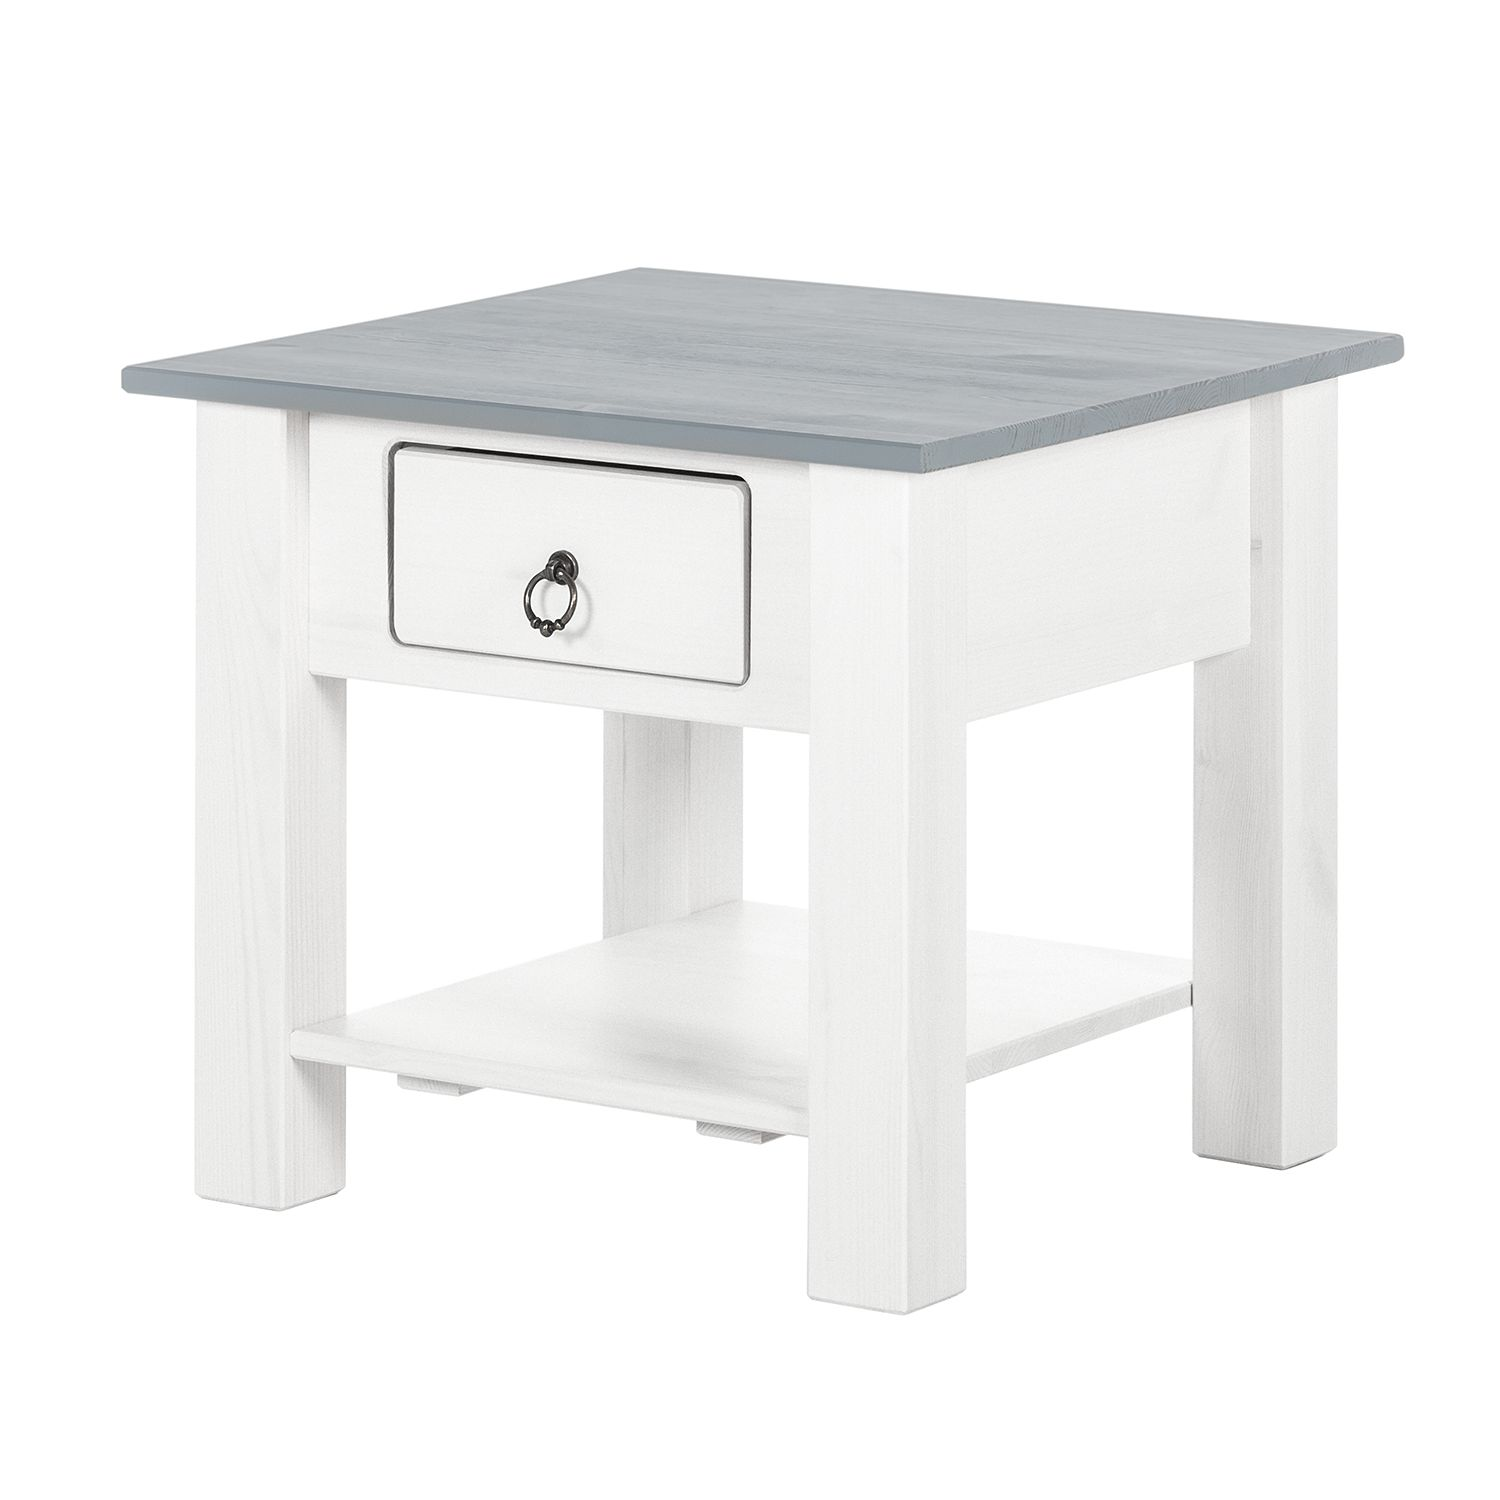 Table d'appoint Valmer I - Pin massif Gris, Maison Belfort